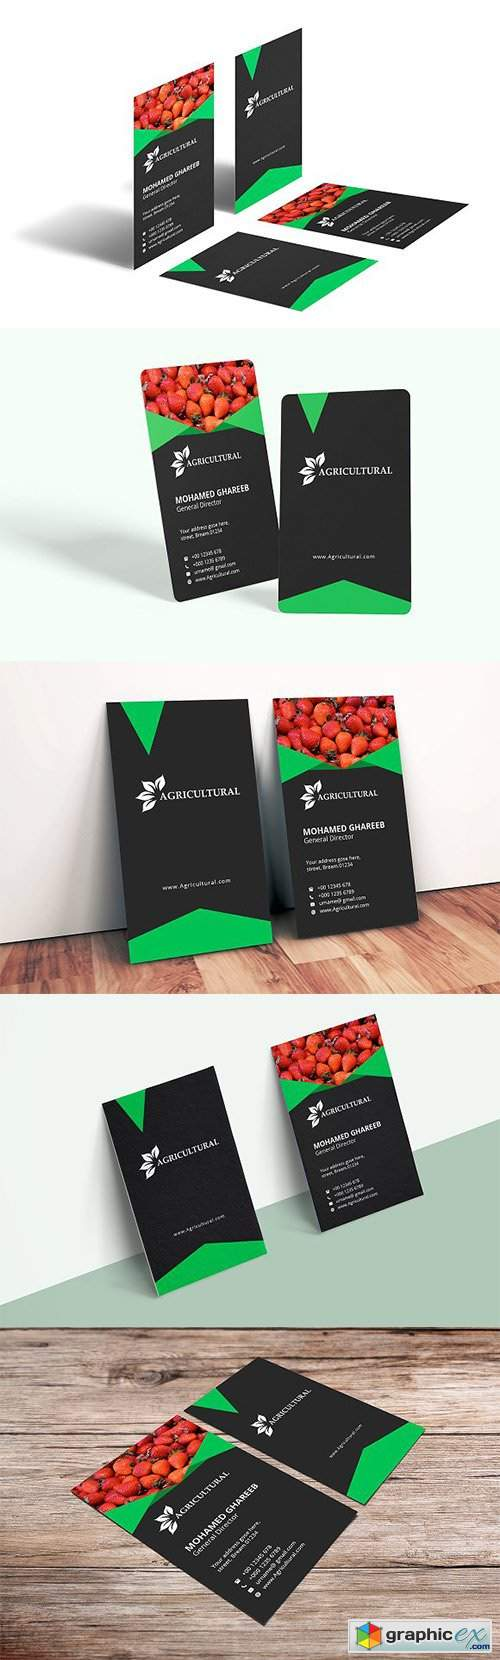 Agriculture Business Card 2633130